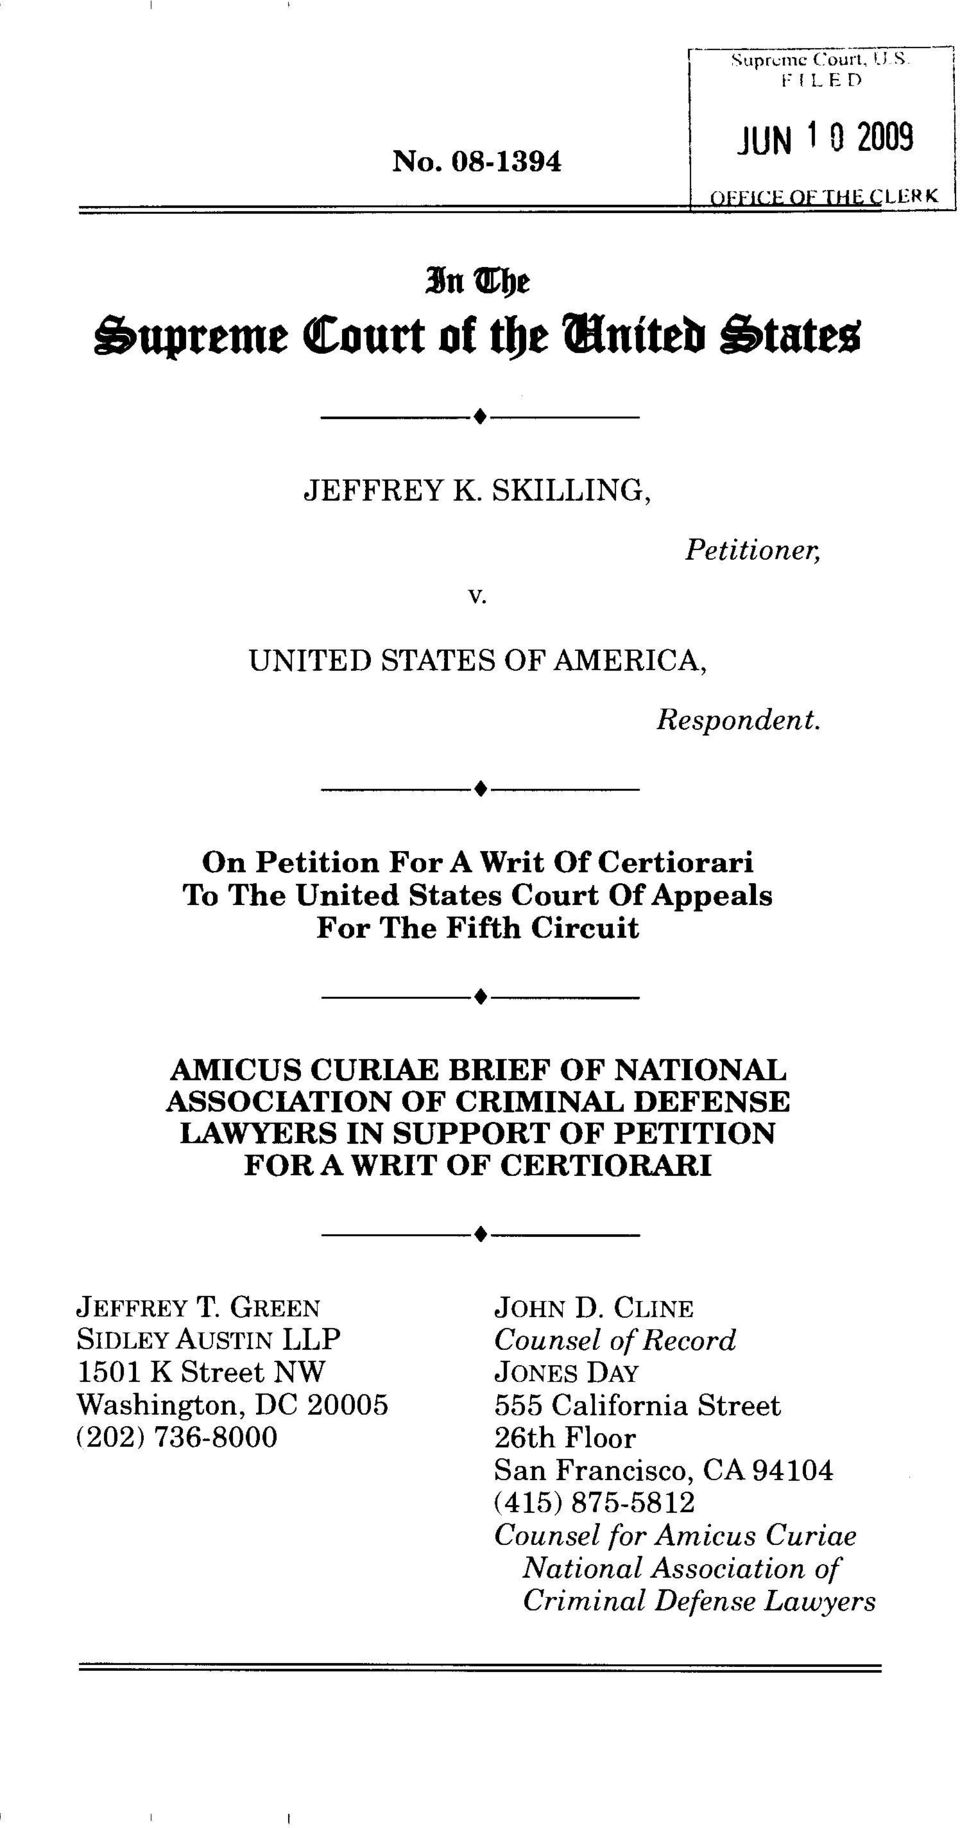 On Petition For A Writ Of Certiorari To The United States Court Of Appeals For The Fifth Circuit AMICUS CURIAE BRIEF OF NATIONAL ASSOCIATION OF CRIMINAL DEFENSE LAWYERS